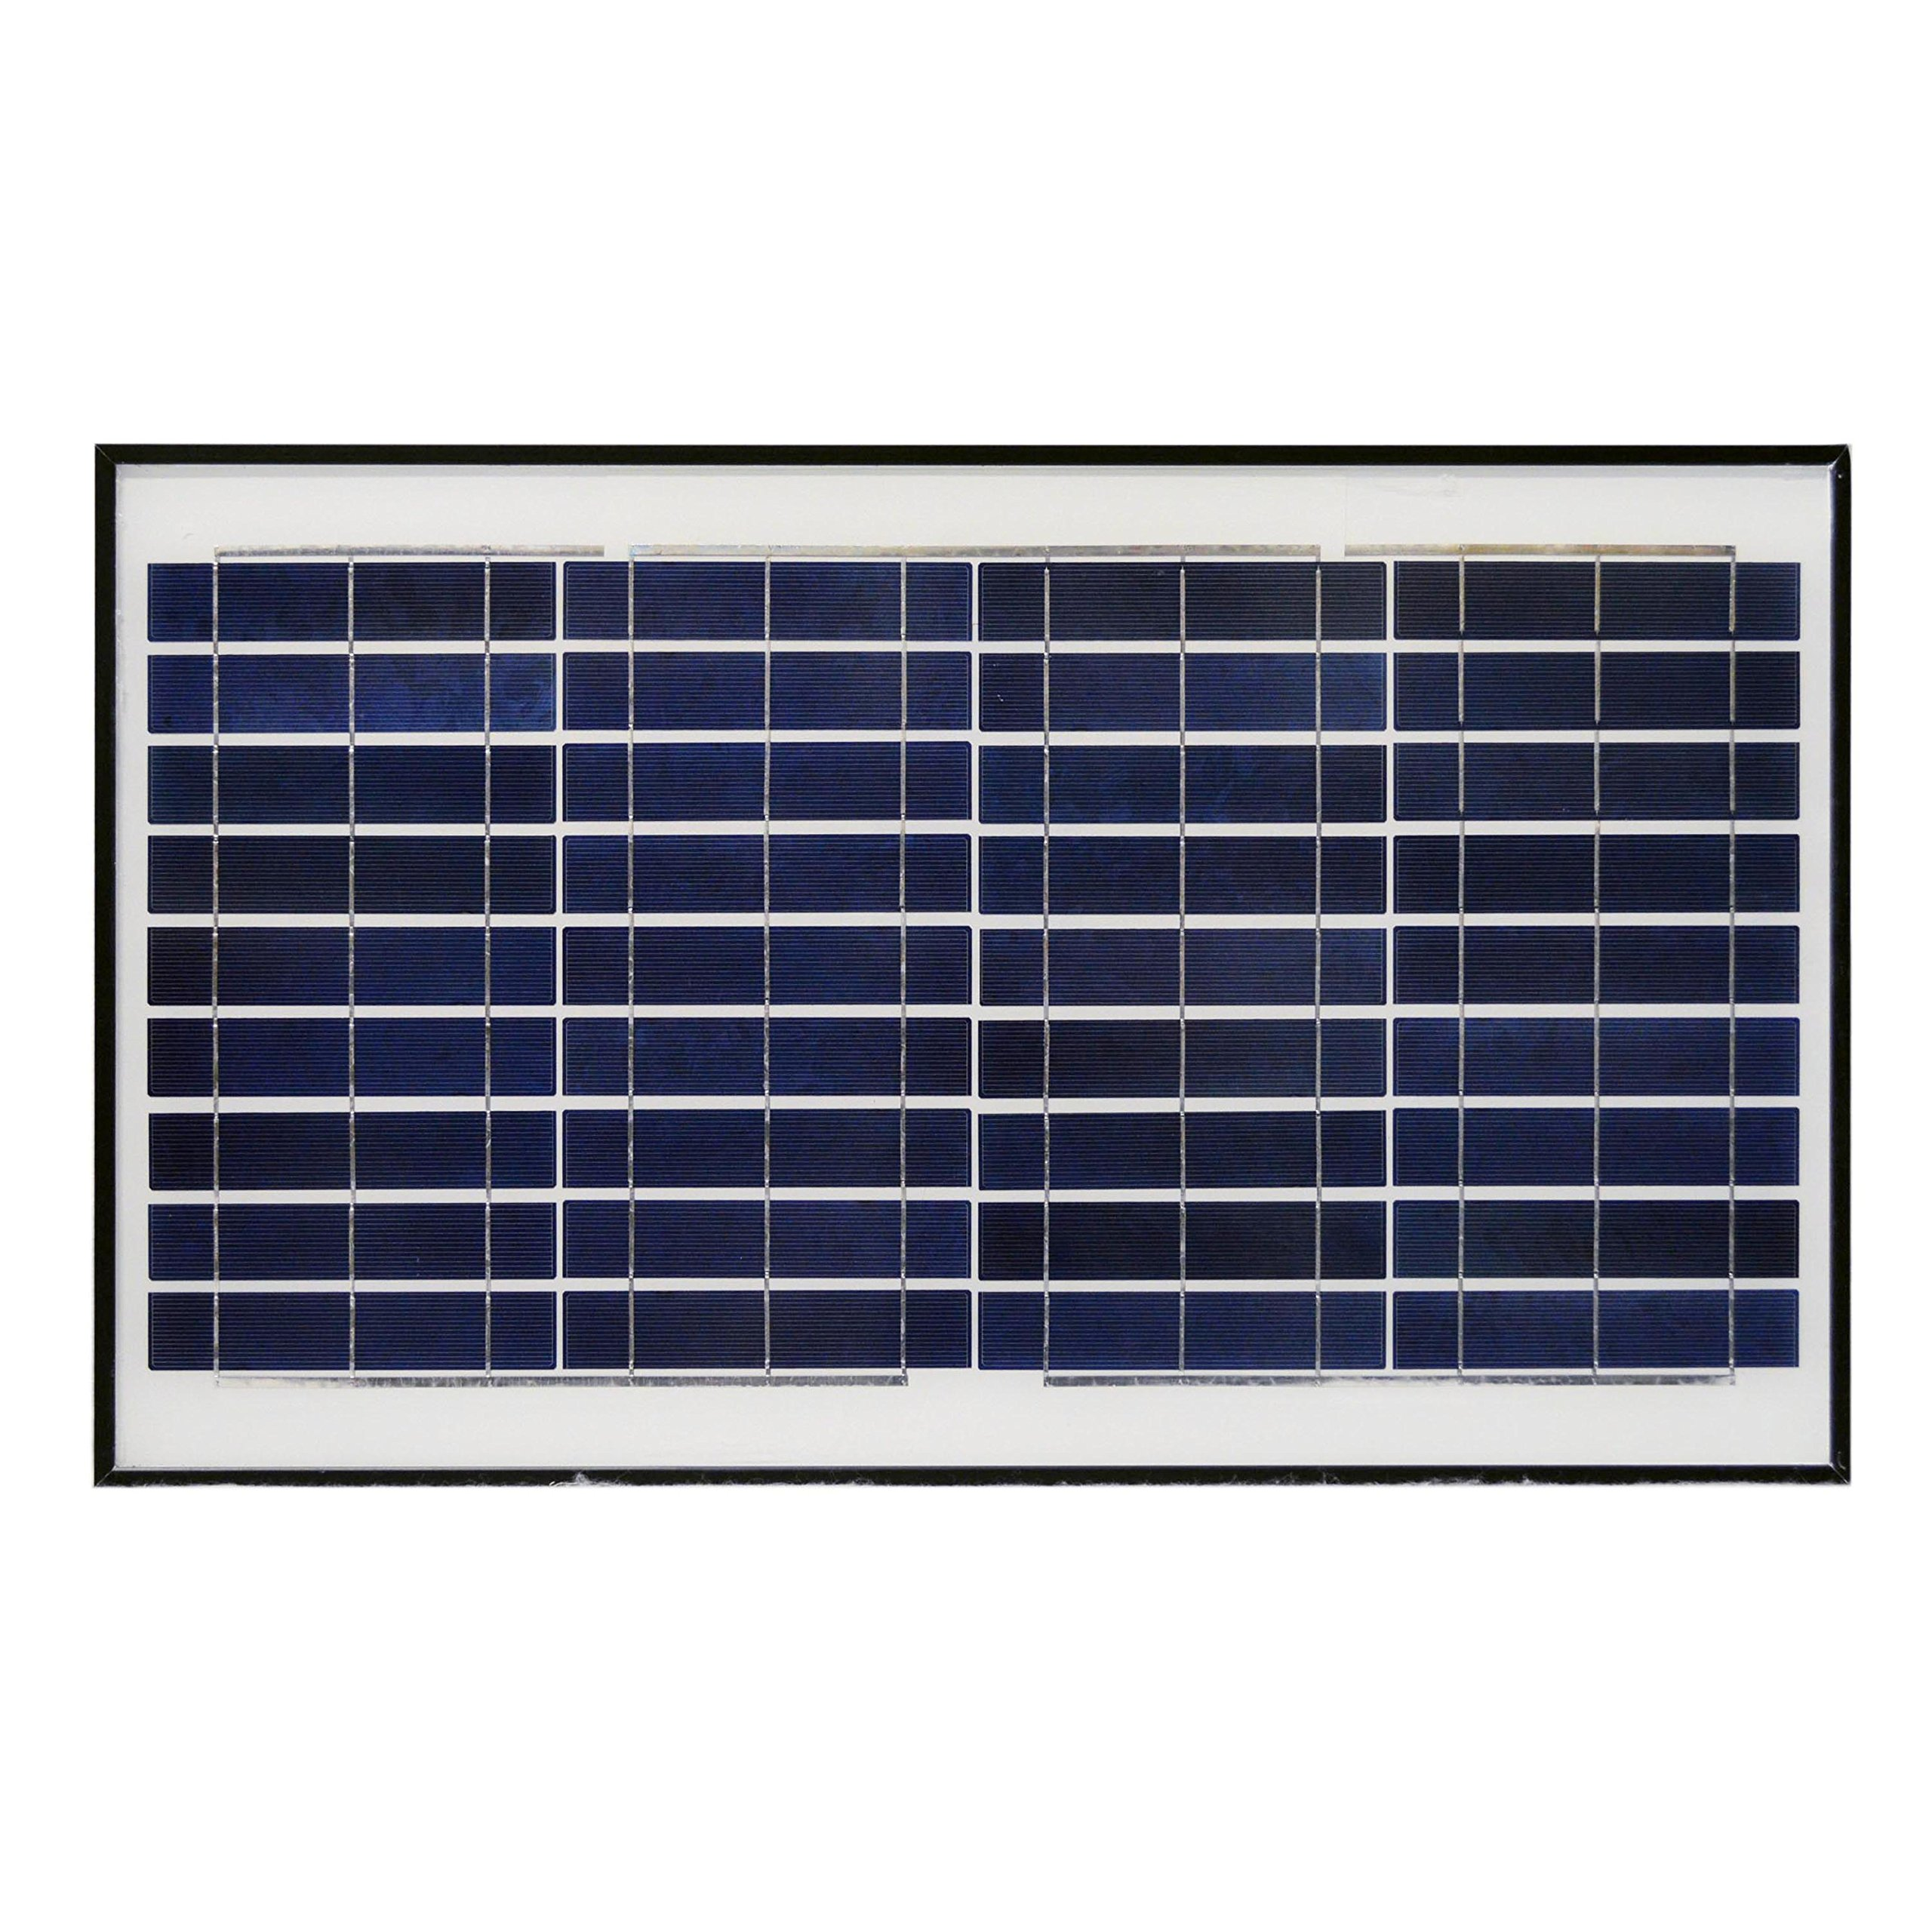 ALEKO SP30W12VP 30 Watt 12 Volt Polycrystalline Solar Panel for Gate Opener Pool Garden Driveway